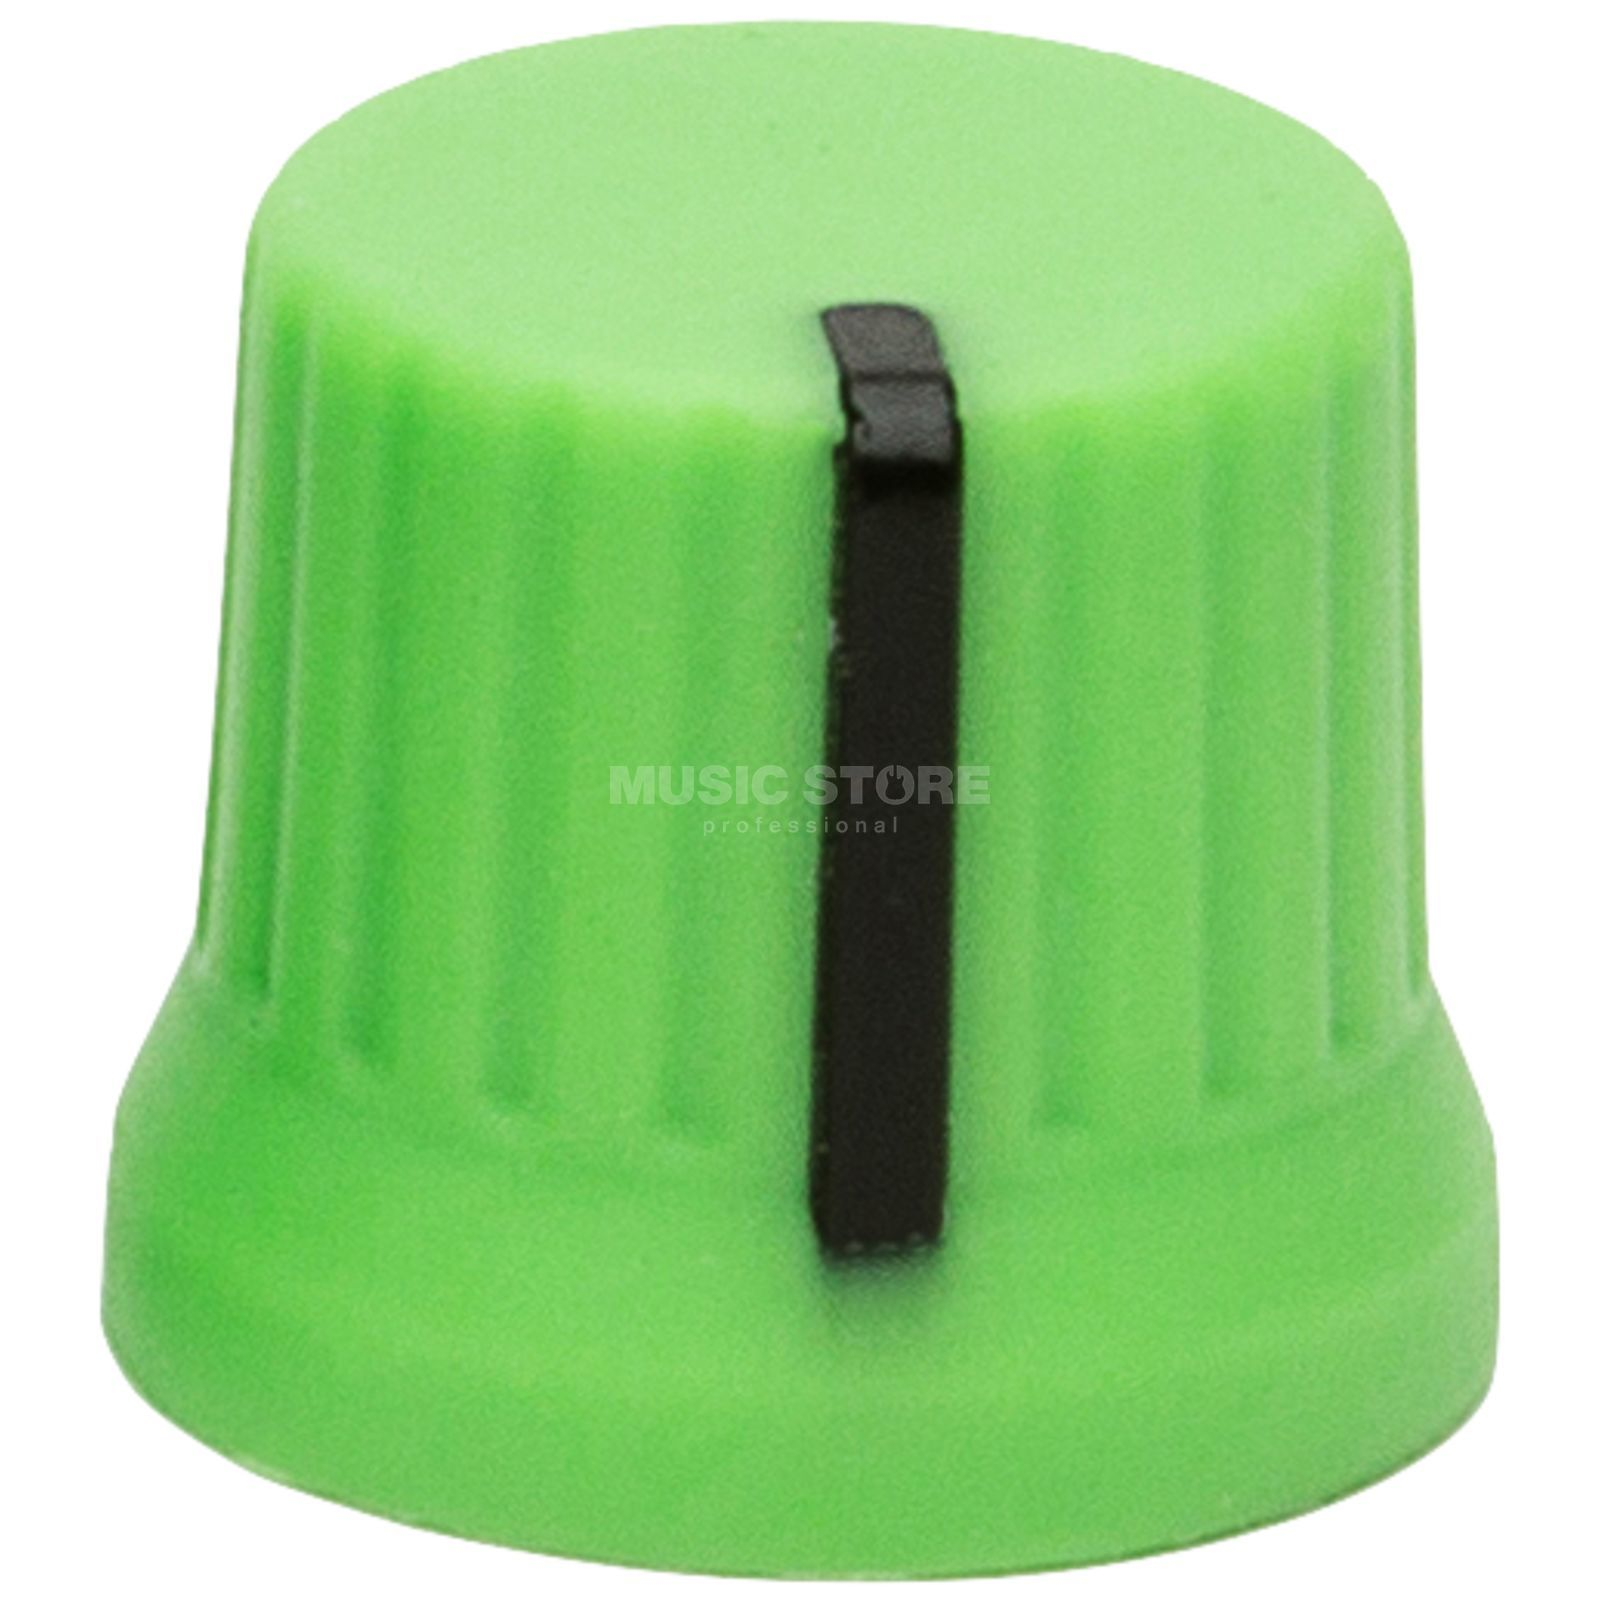 DJ TECHTOOLS Chroma Caps V2 Fatty Knob green Product Image